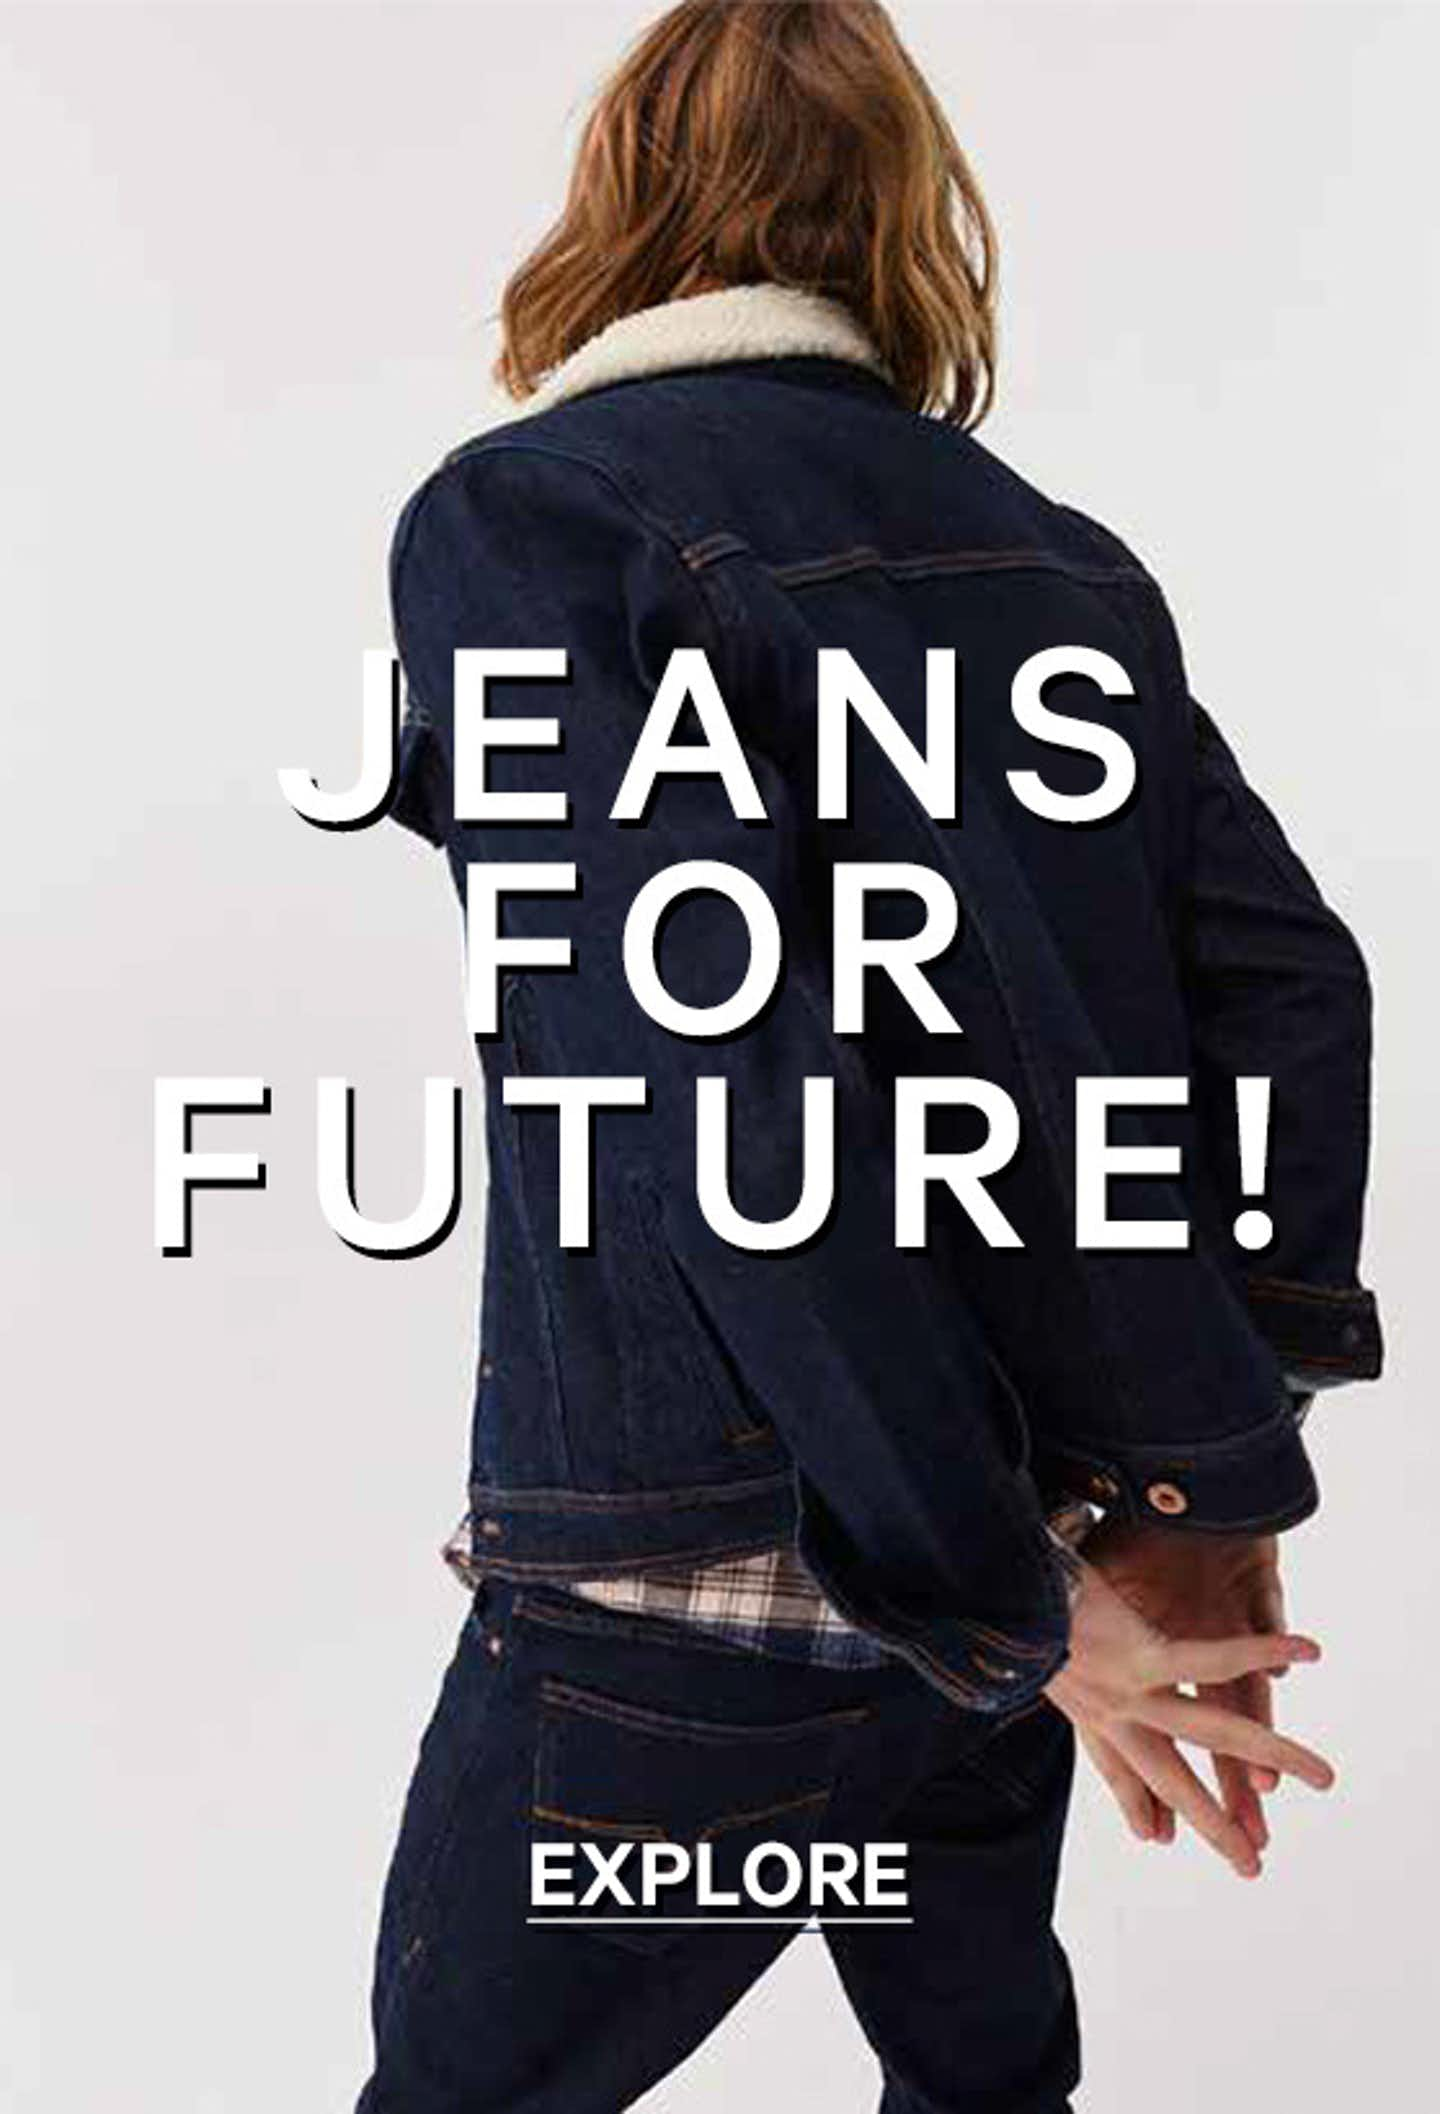 jeans for future